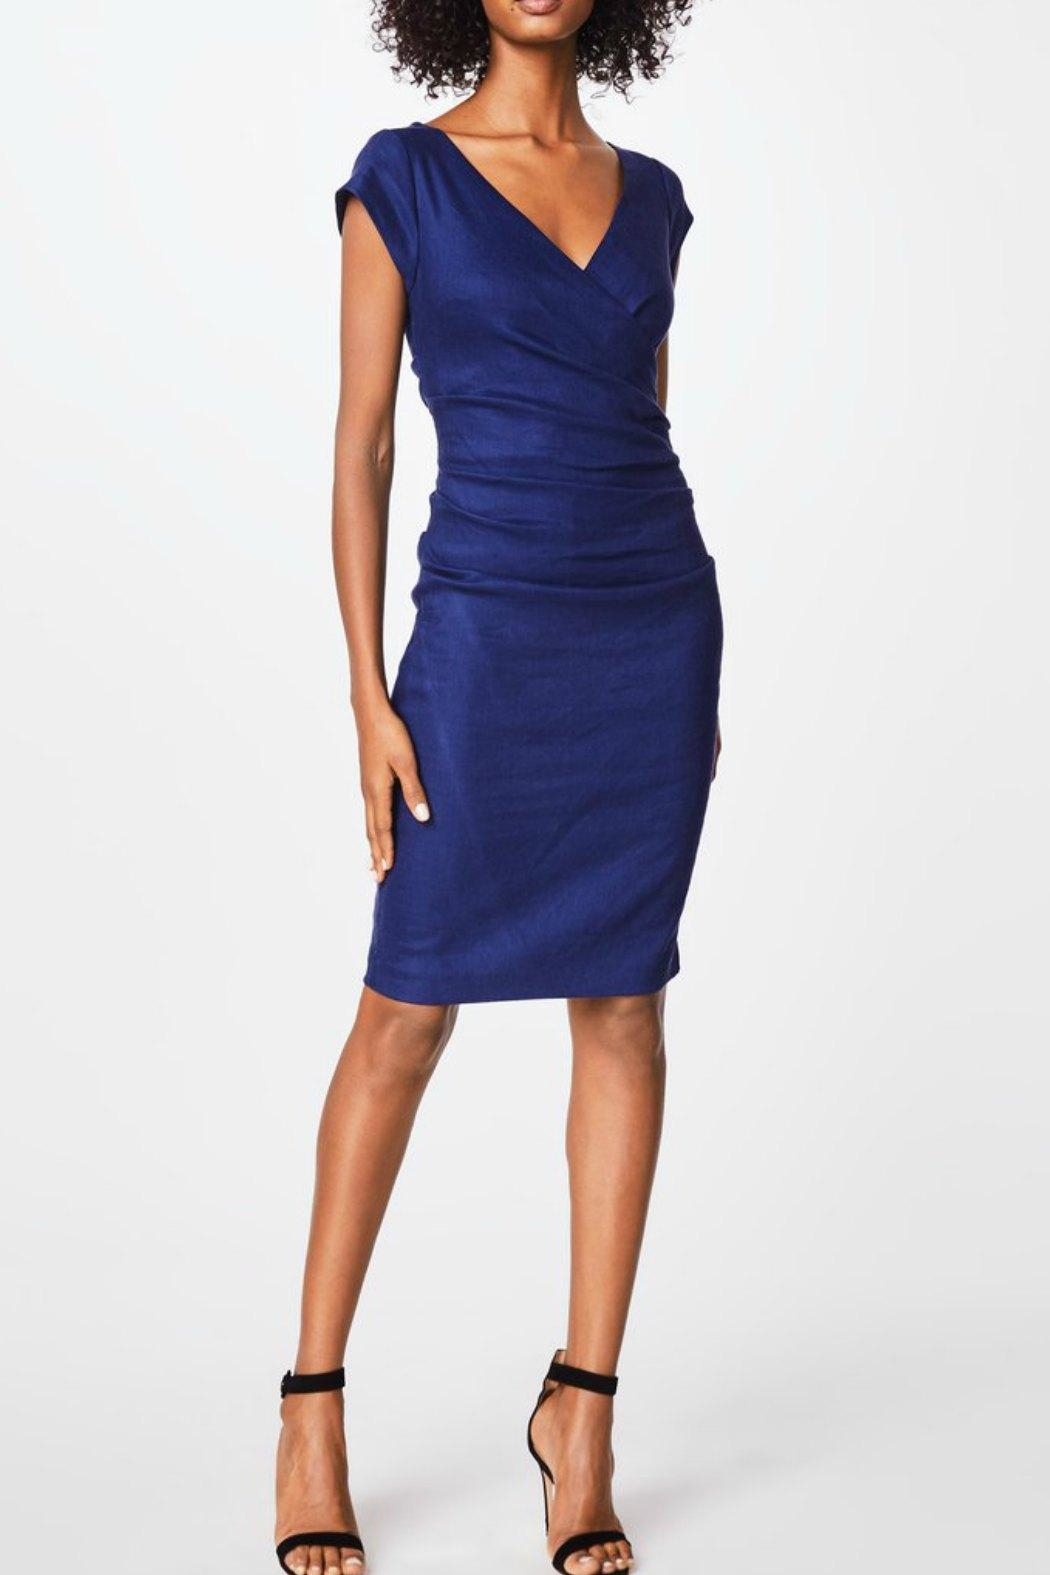 Nicole Miller Cap Sleeve Dress - Main Image